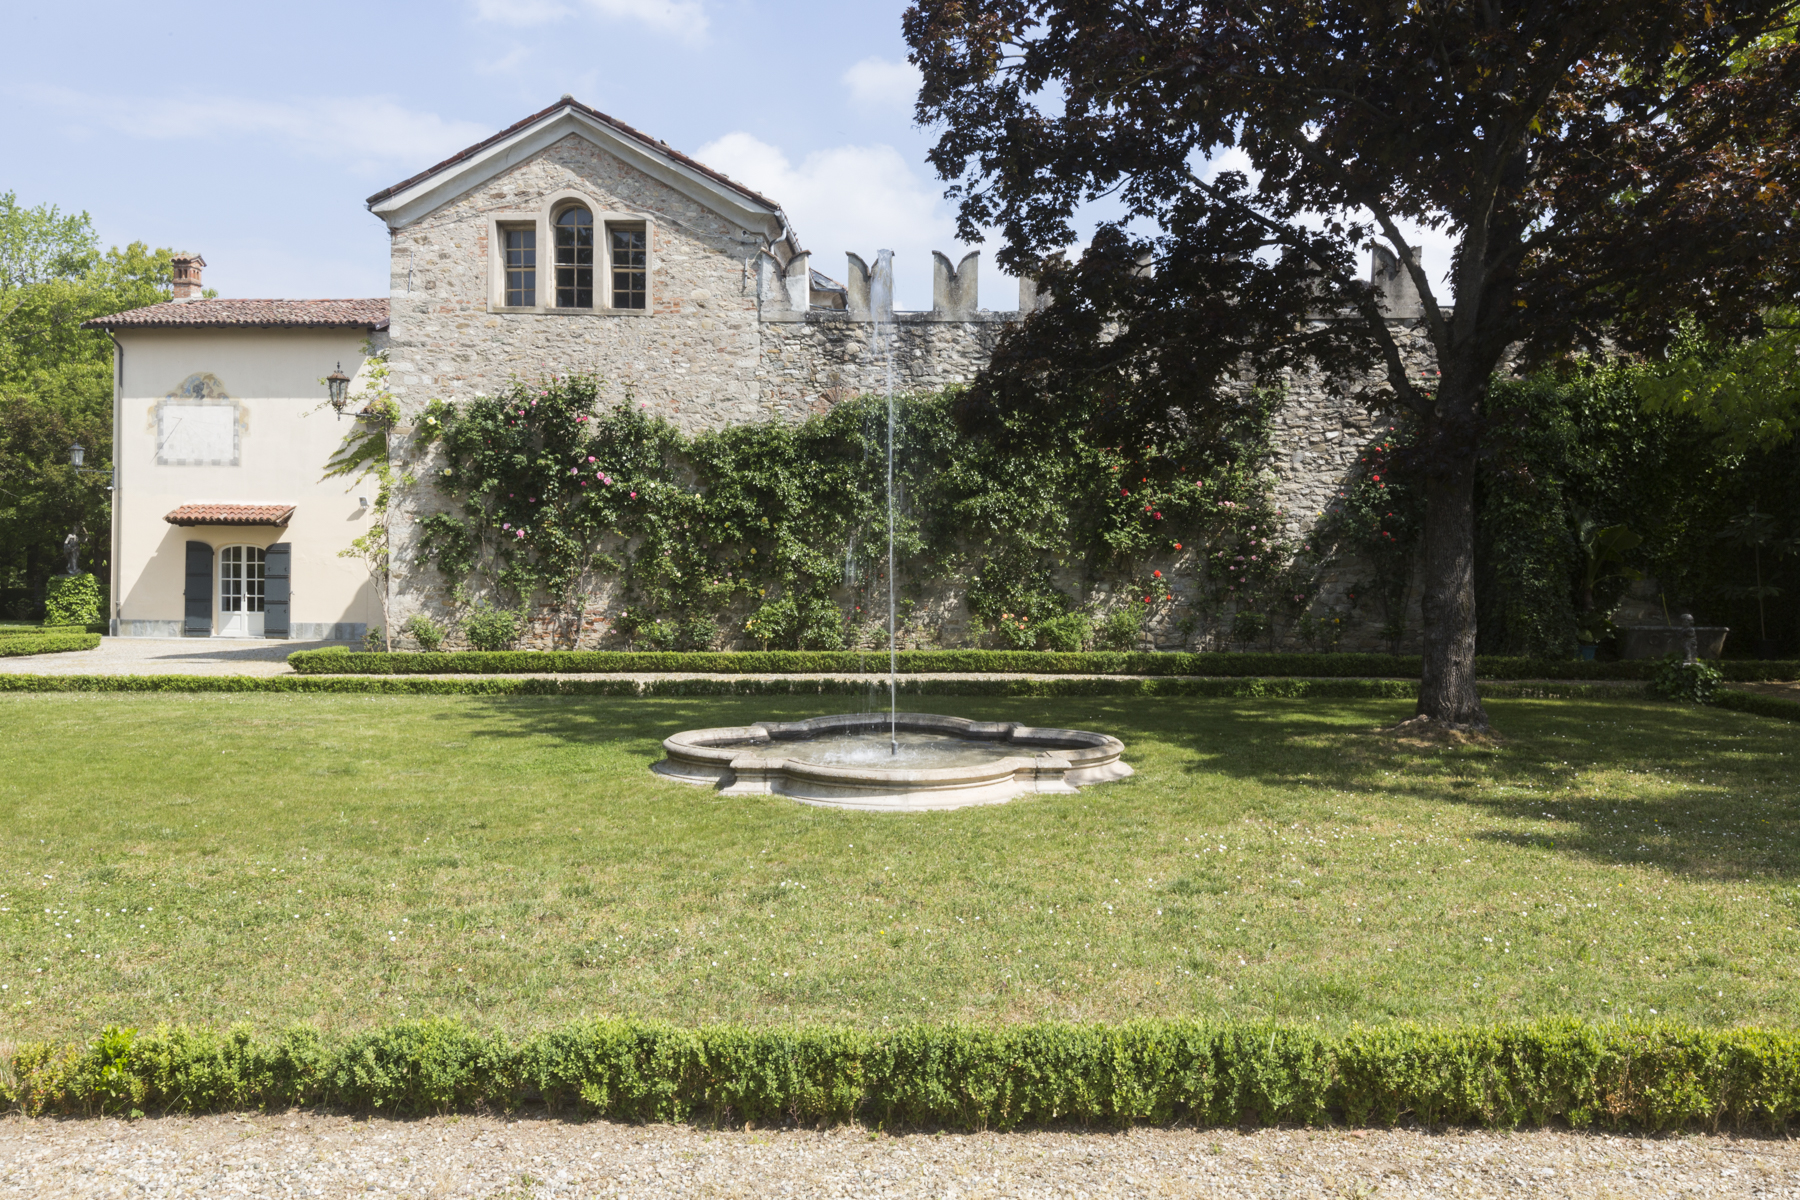 Additional photo for property listing at Timeless medieval castle surrounded by green Borghetto Borbera, Alessandria Italie